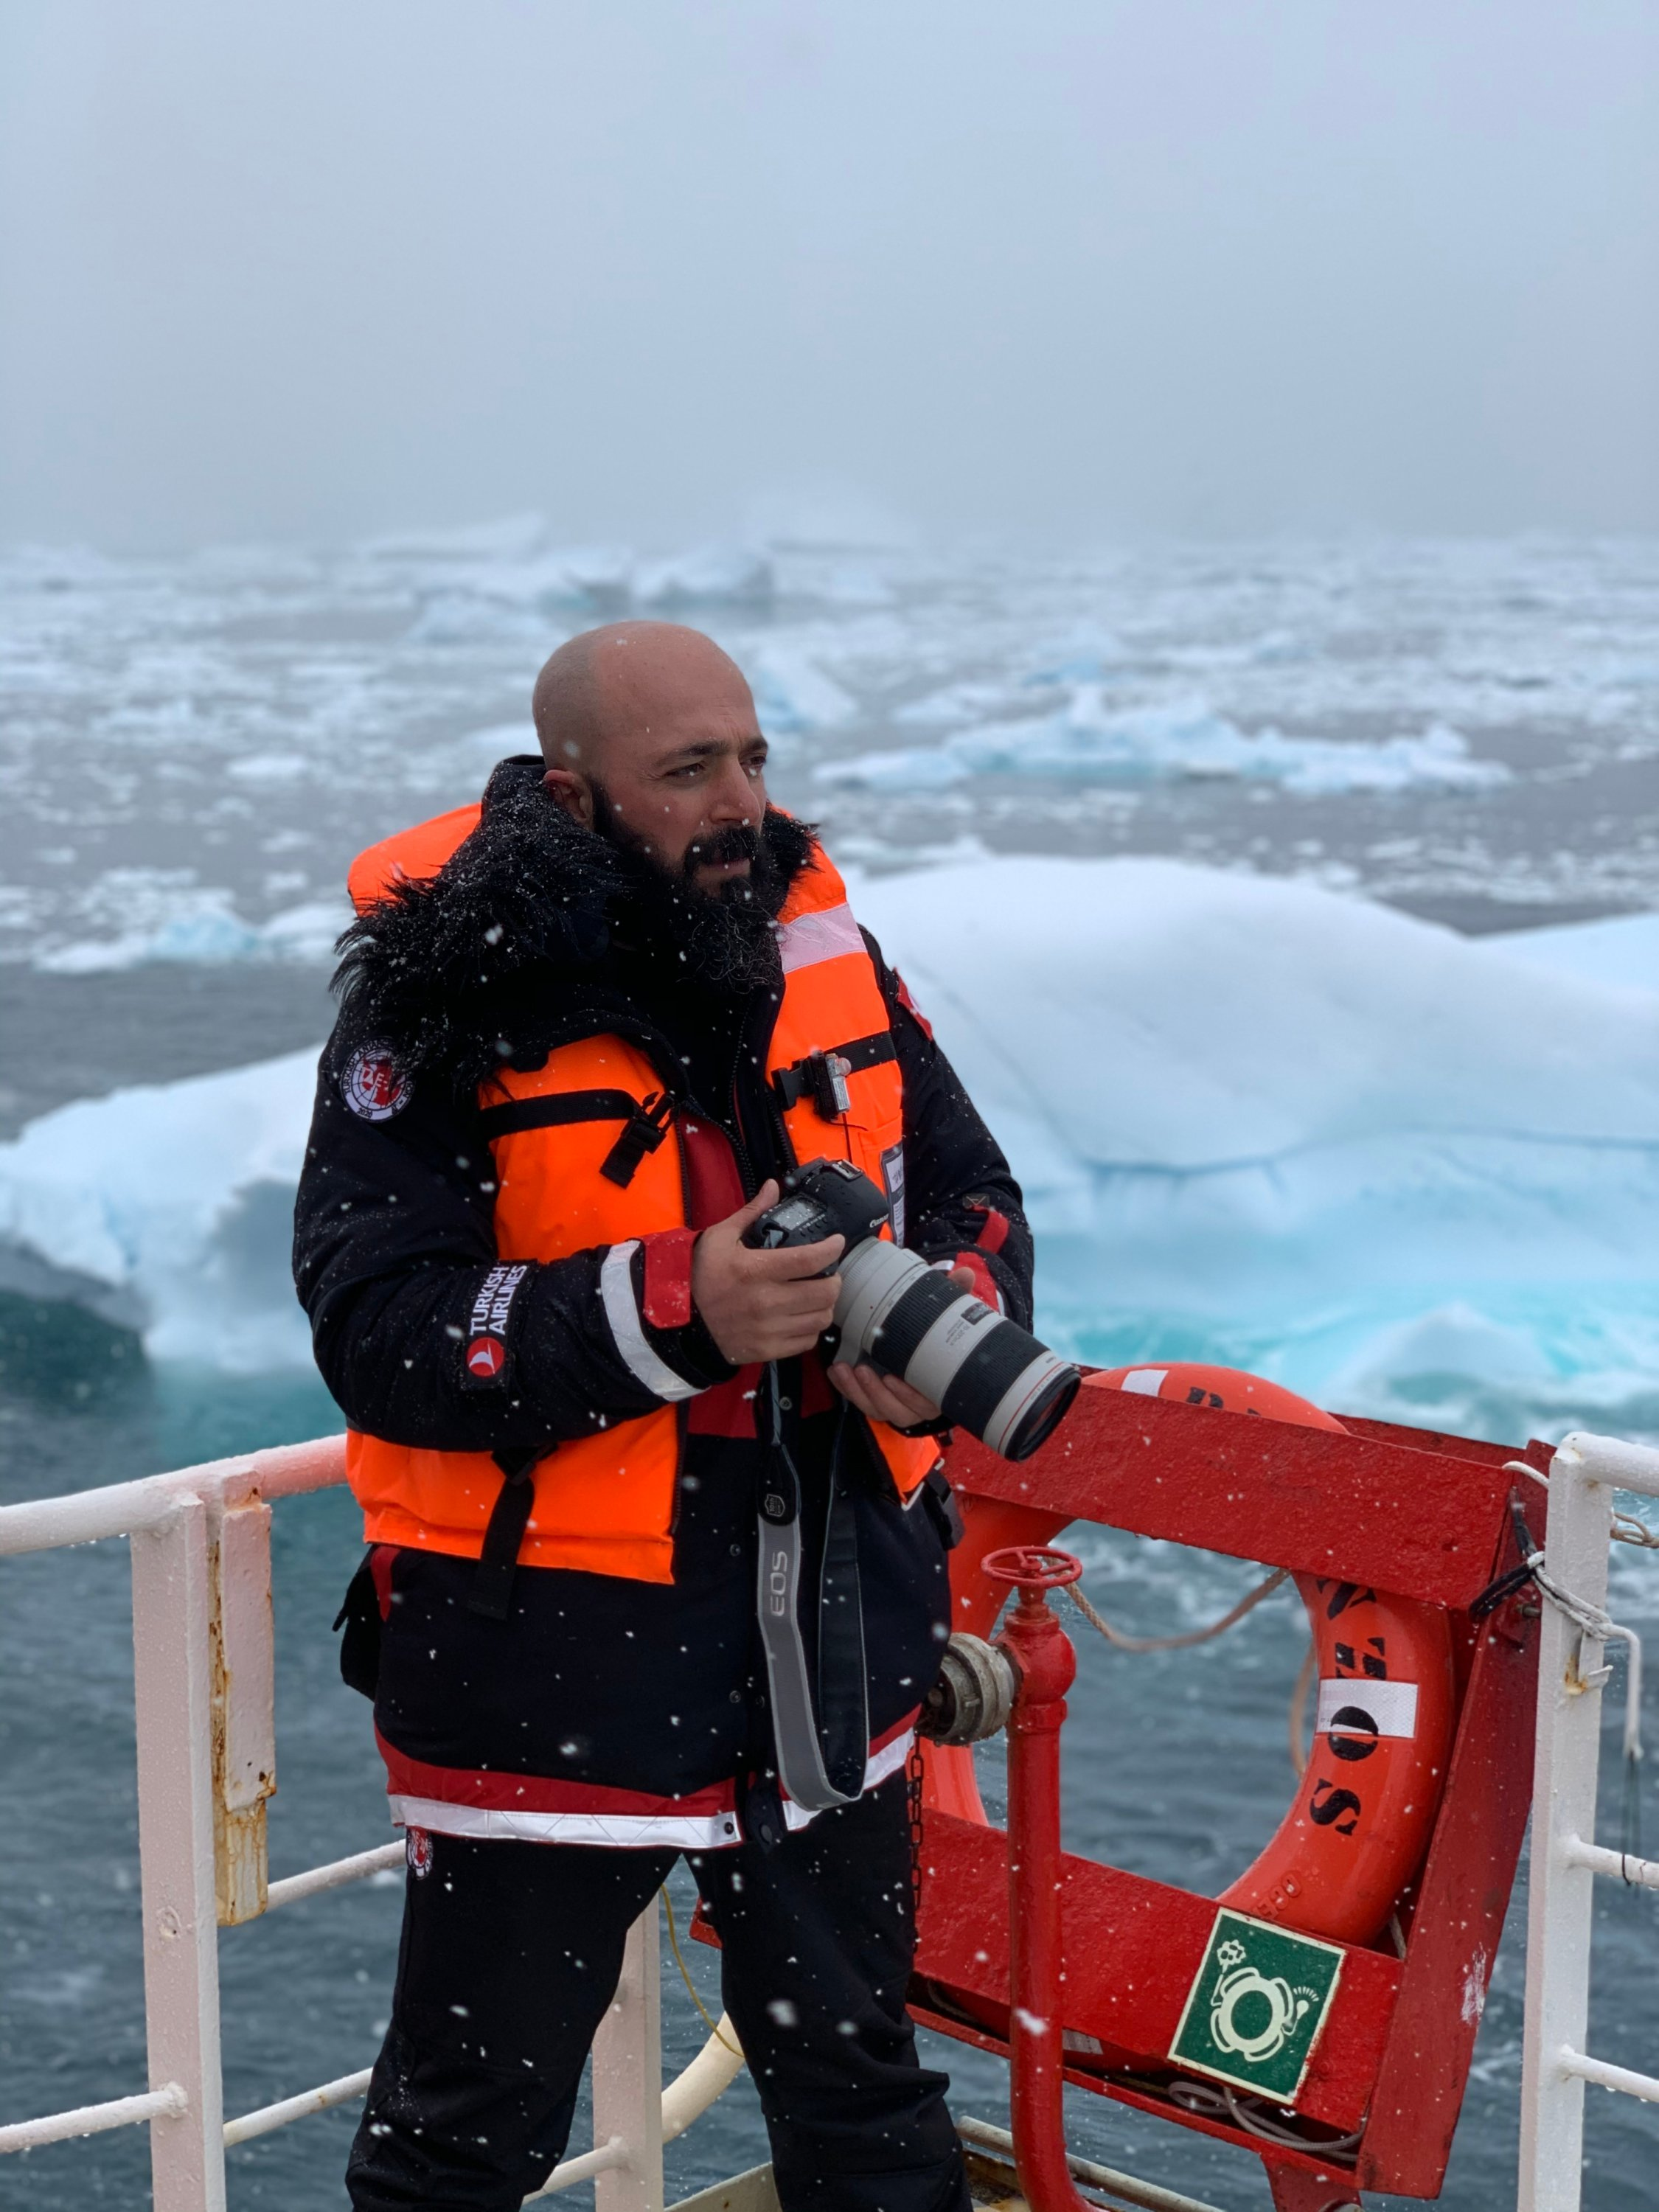 Photojournalist Hayrettin Bektaş capturing snippets from his journey through Antarctica.